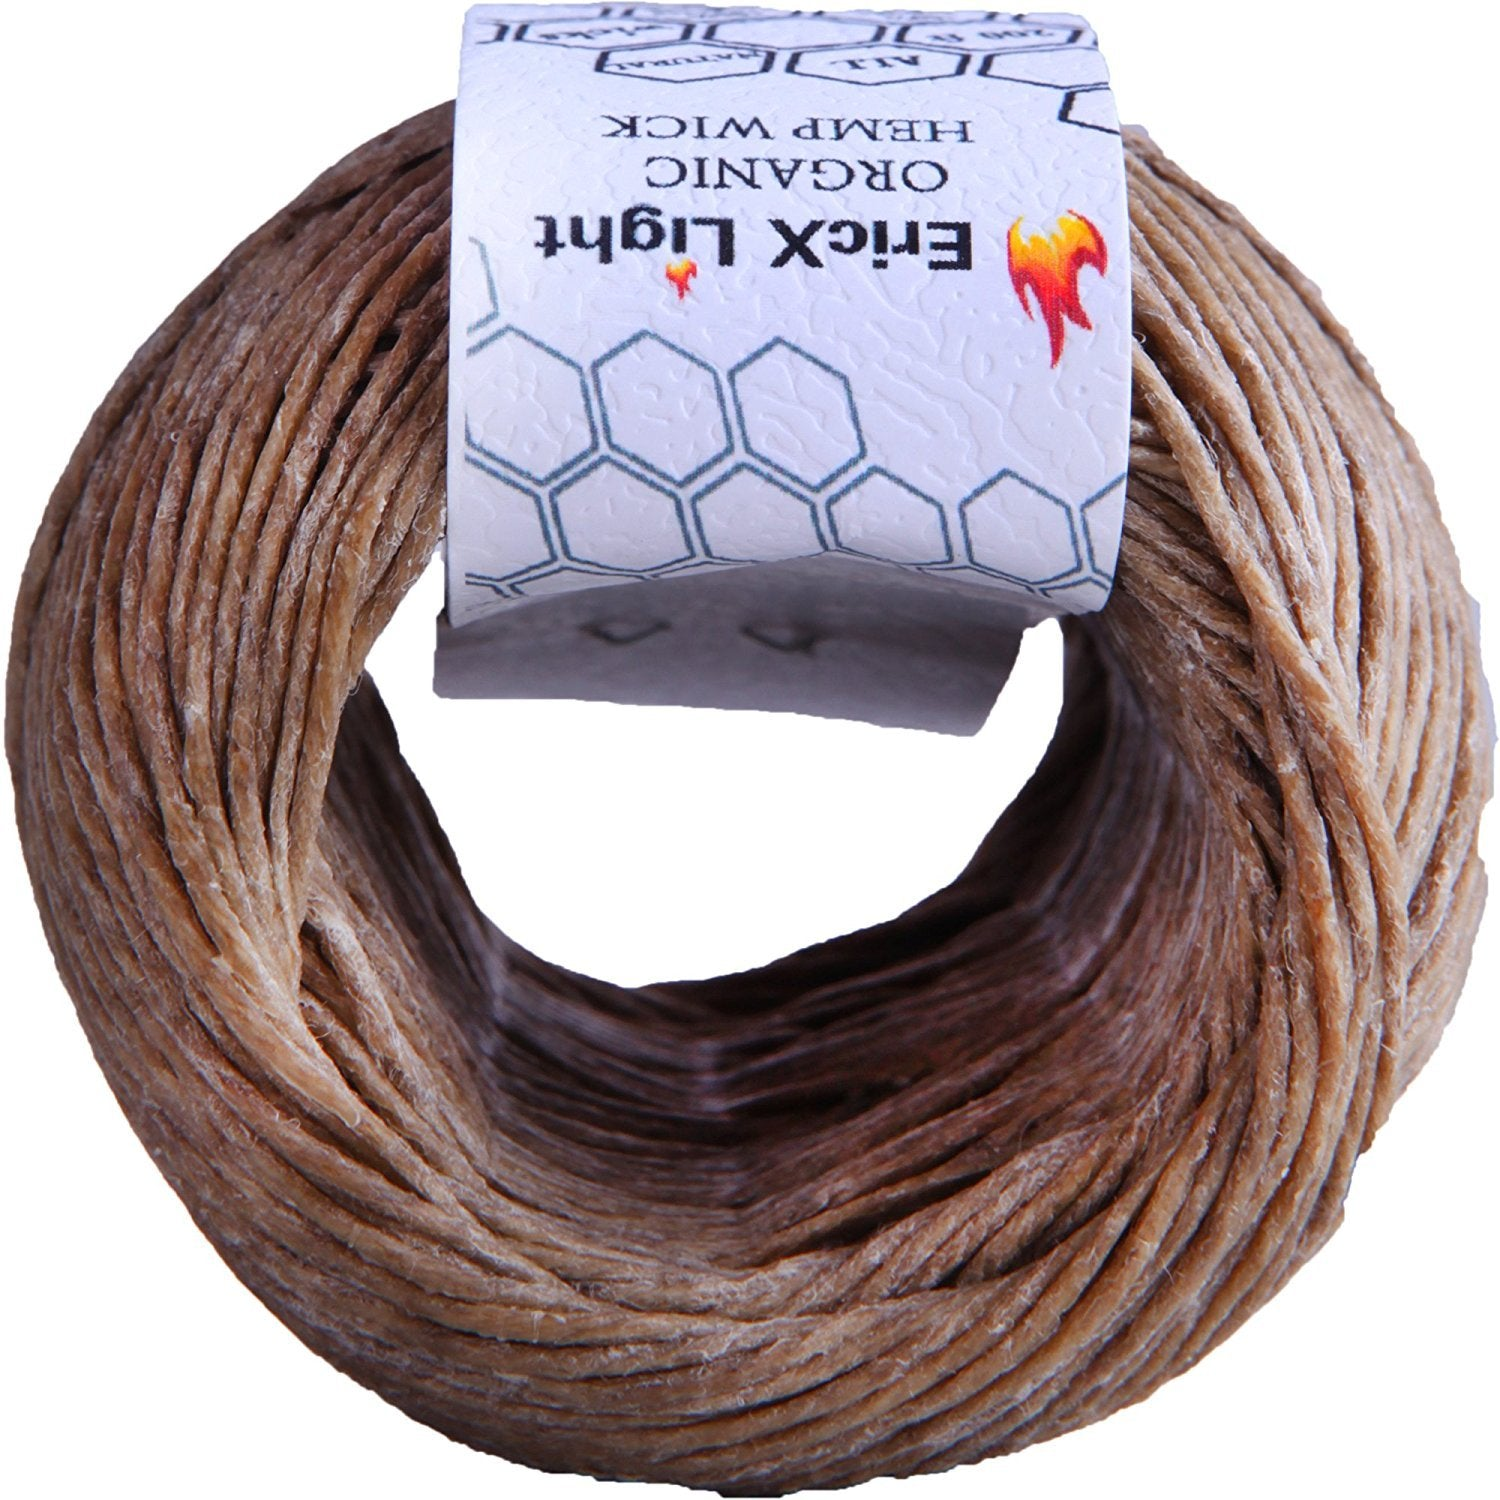 Standard Size 100/% Organic Hemp Wick Well Coated With Natural BeesWax EricX Light Beeswax Hemp Wick 1.0mm 200 ft Spool